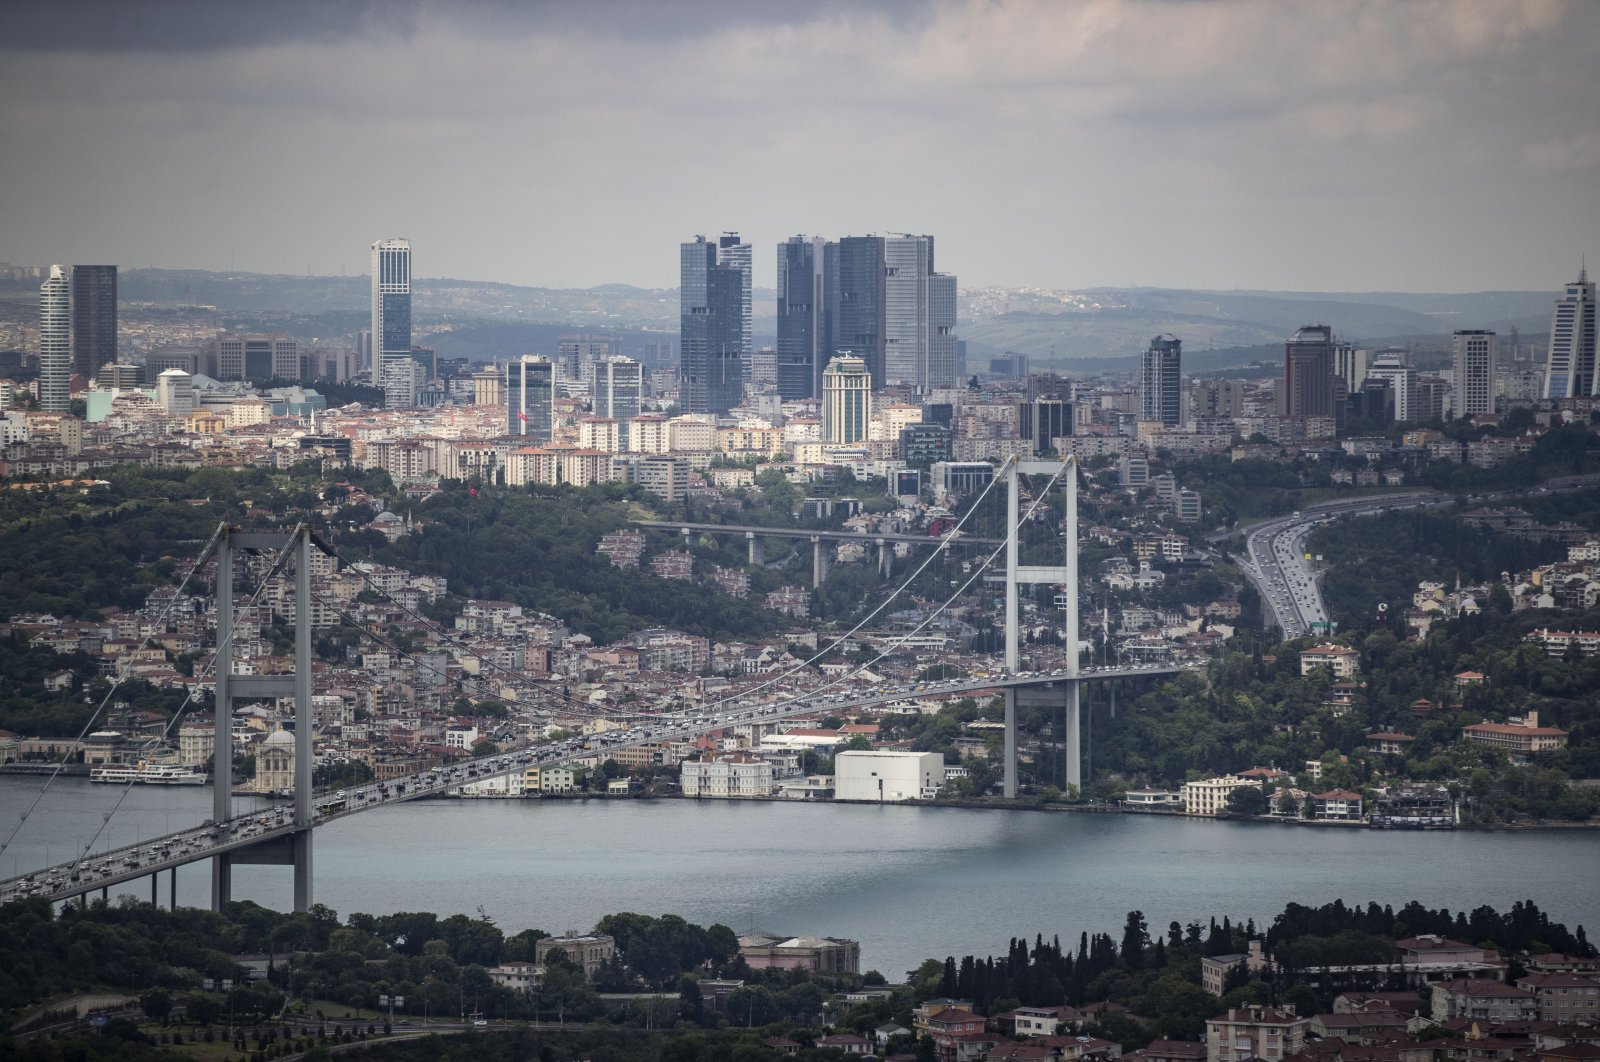 A general view of the July 15 Martyrs Bridge, formerly known as the Bosporus Bridge, and surrounding buildings, Istanbul, Turkey, May 28, 2020. (AA Photo)